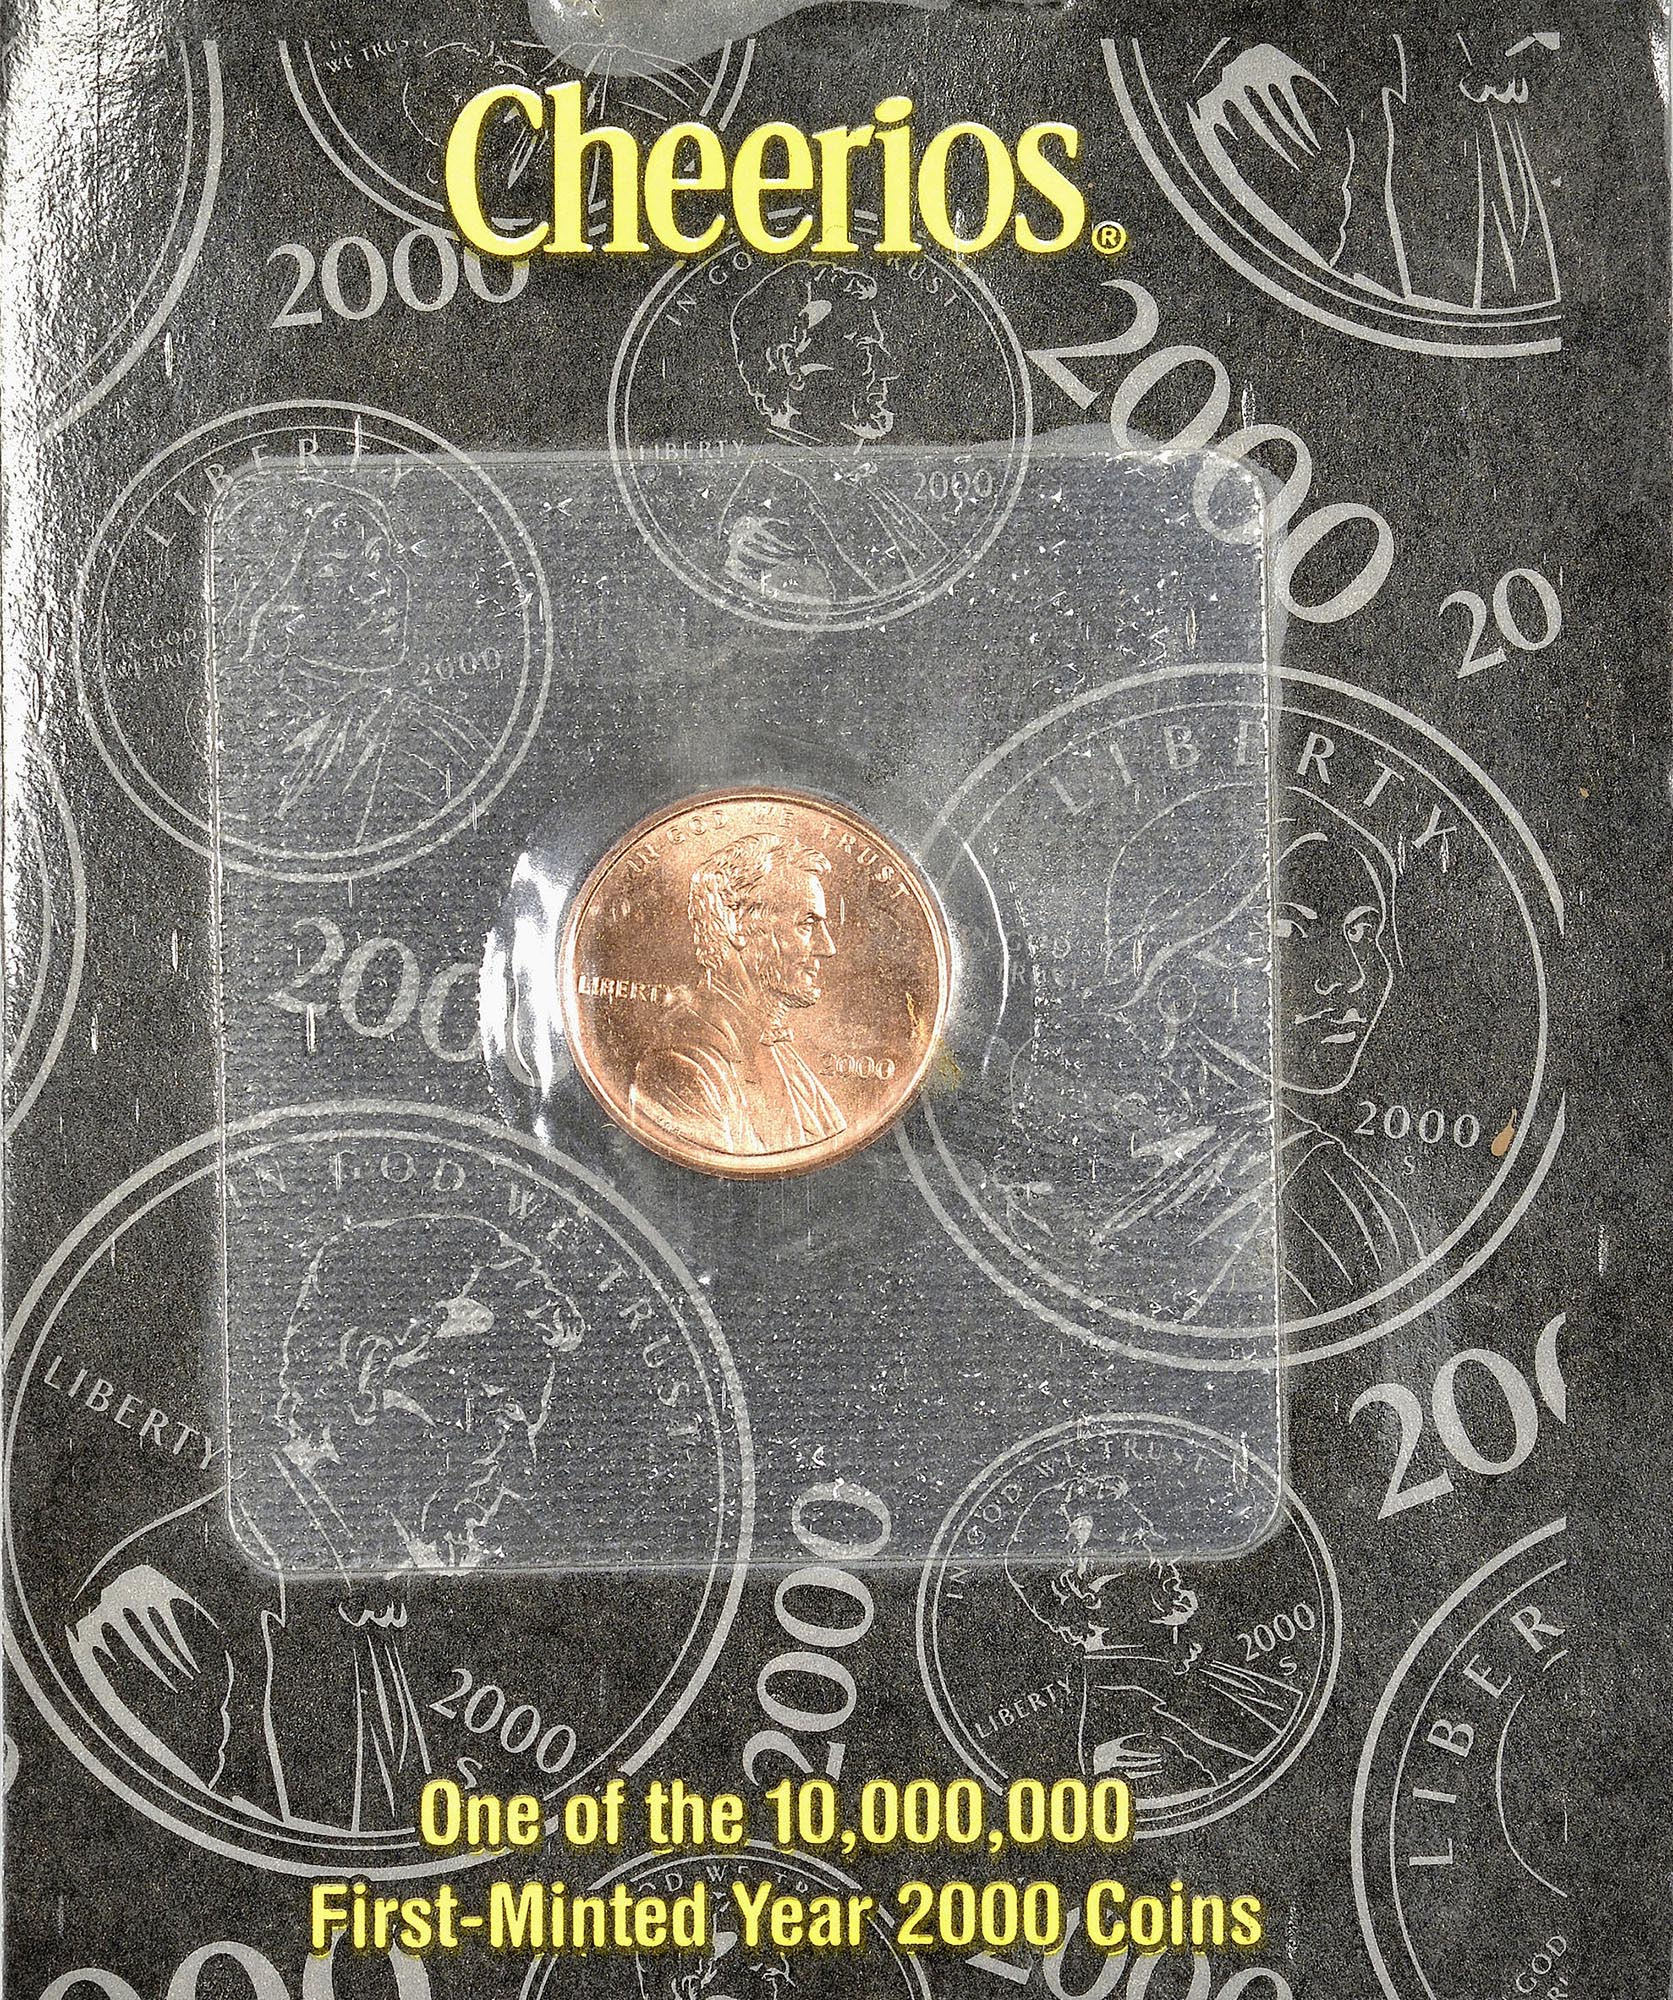 2000 Cheerios Promotion 1C MS Lincoln Cents, Memorial